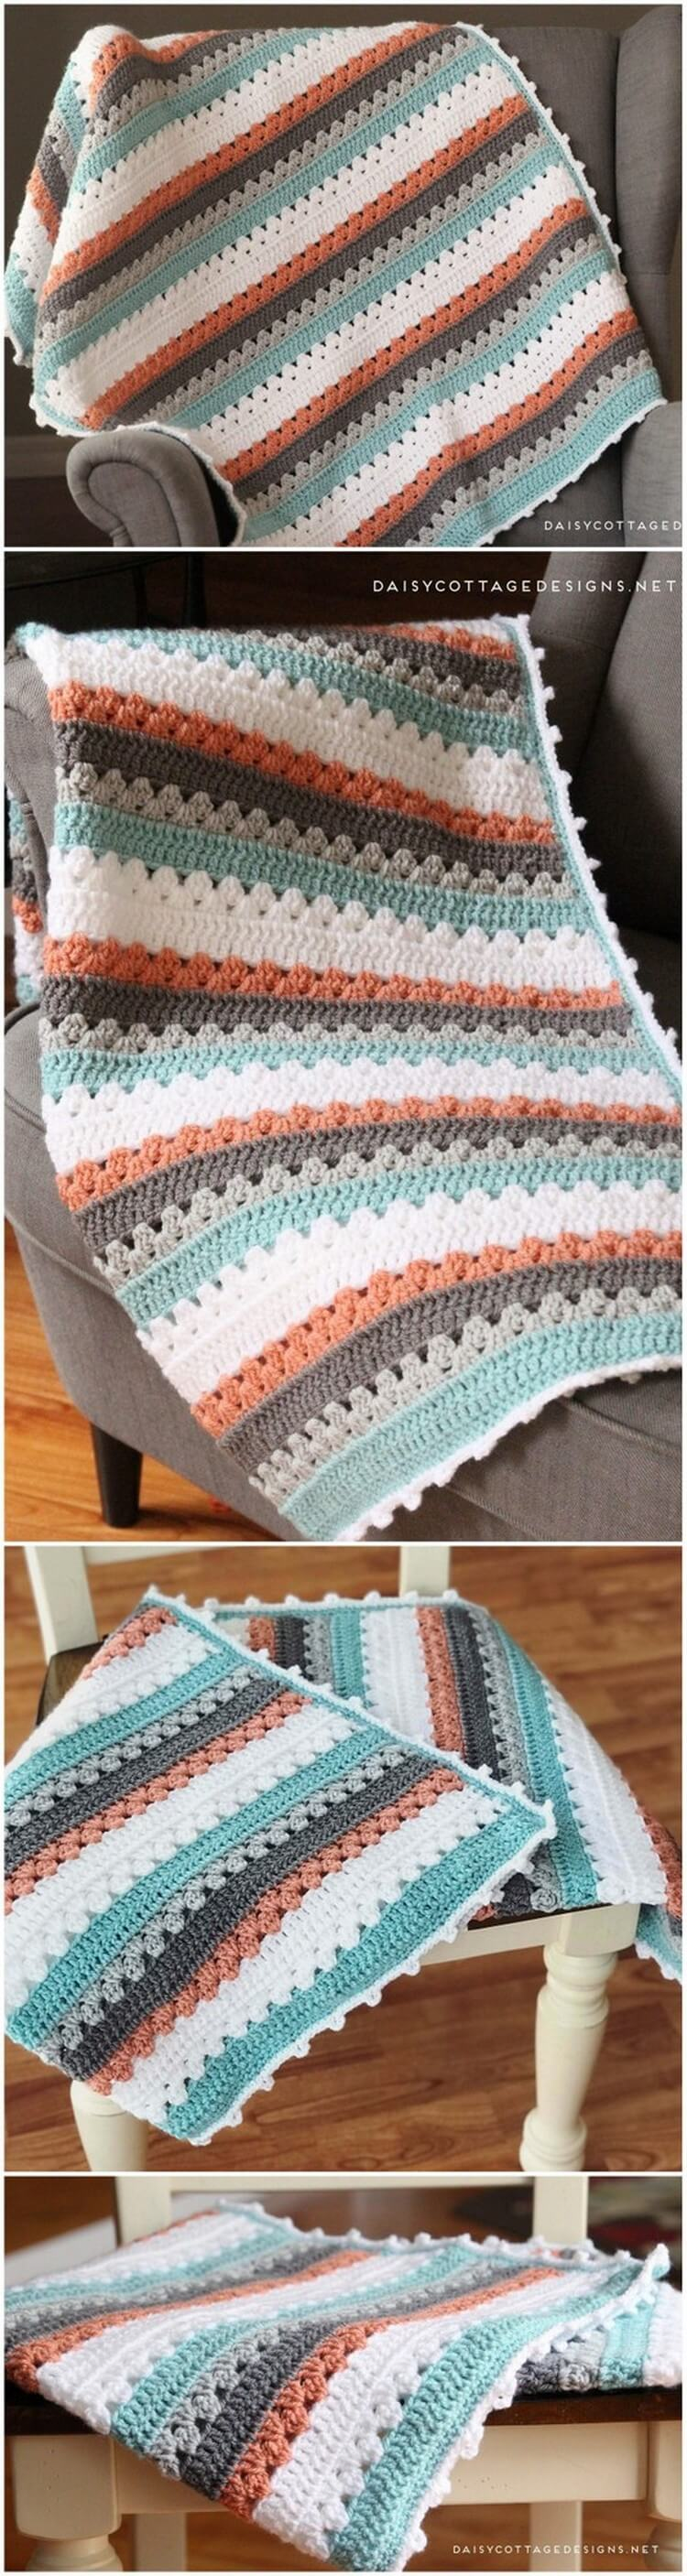 Crochet Blanket Pattern (48)